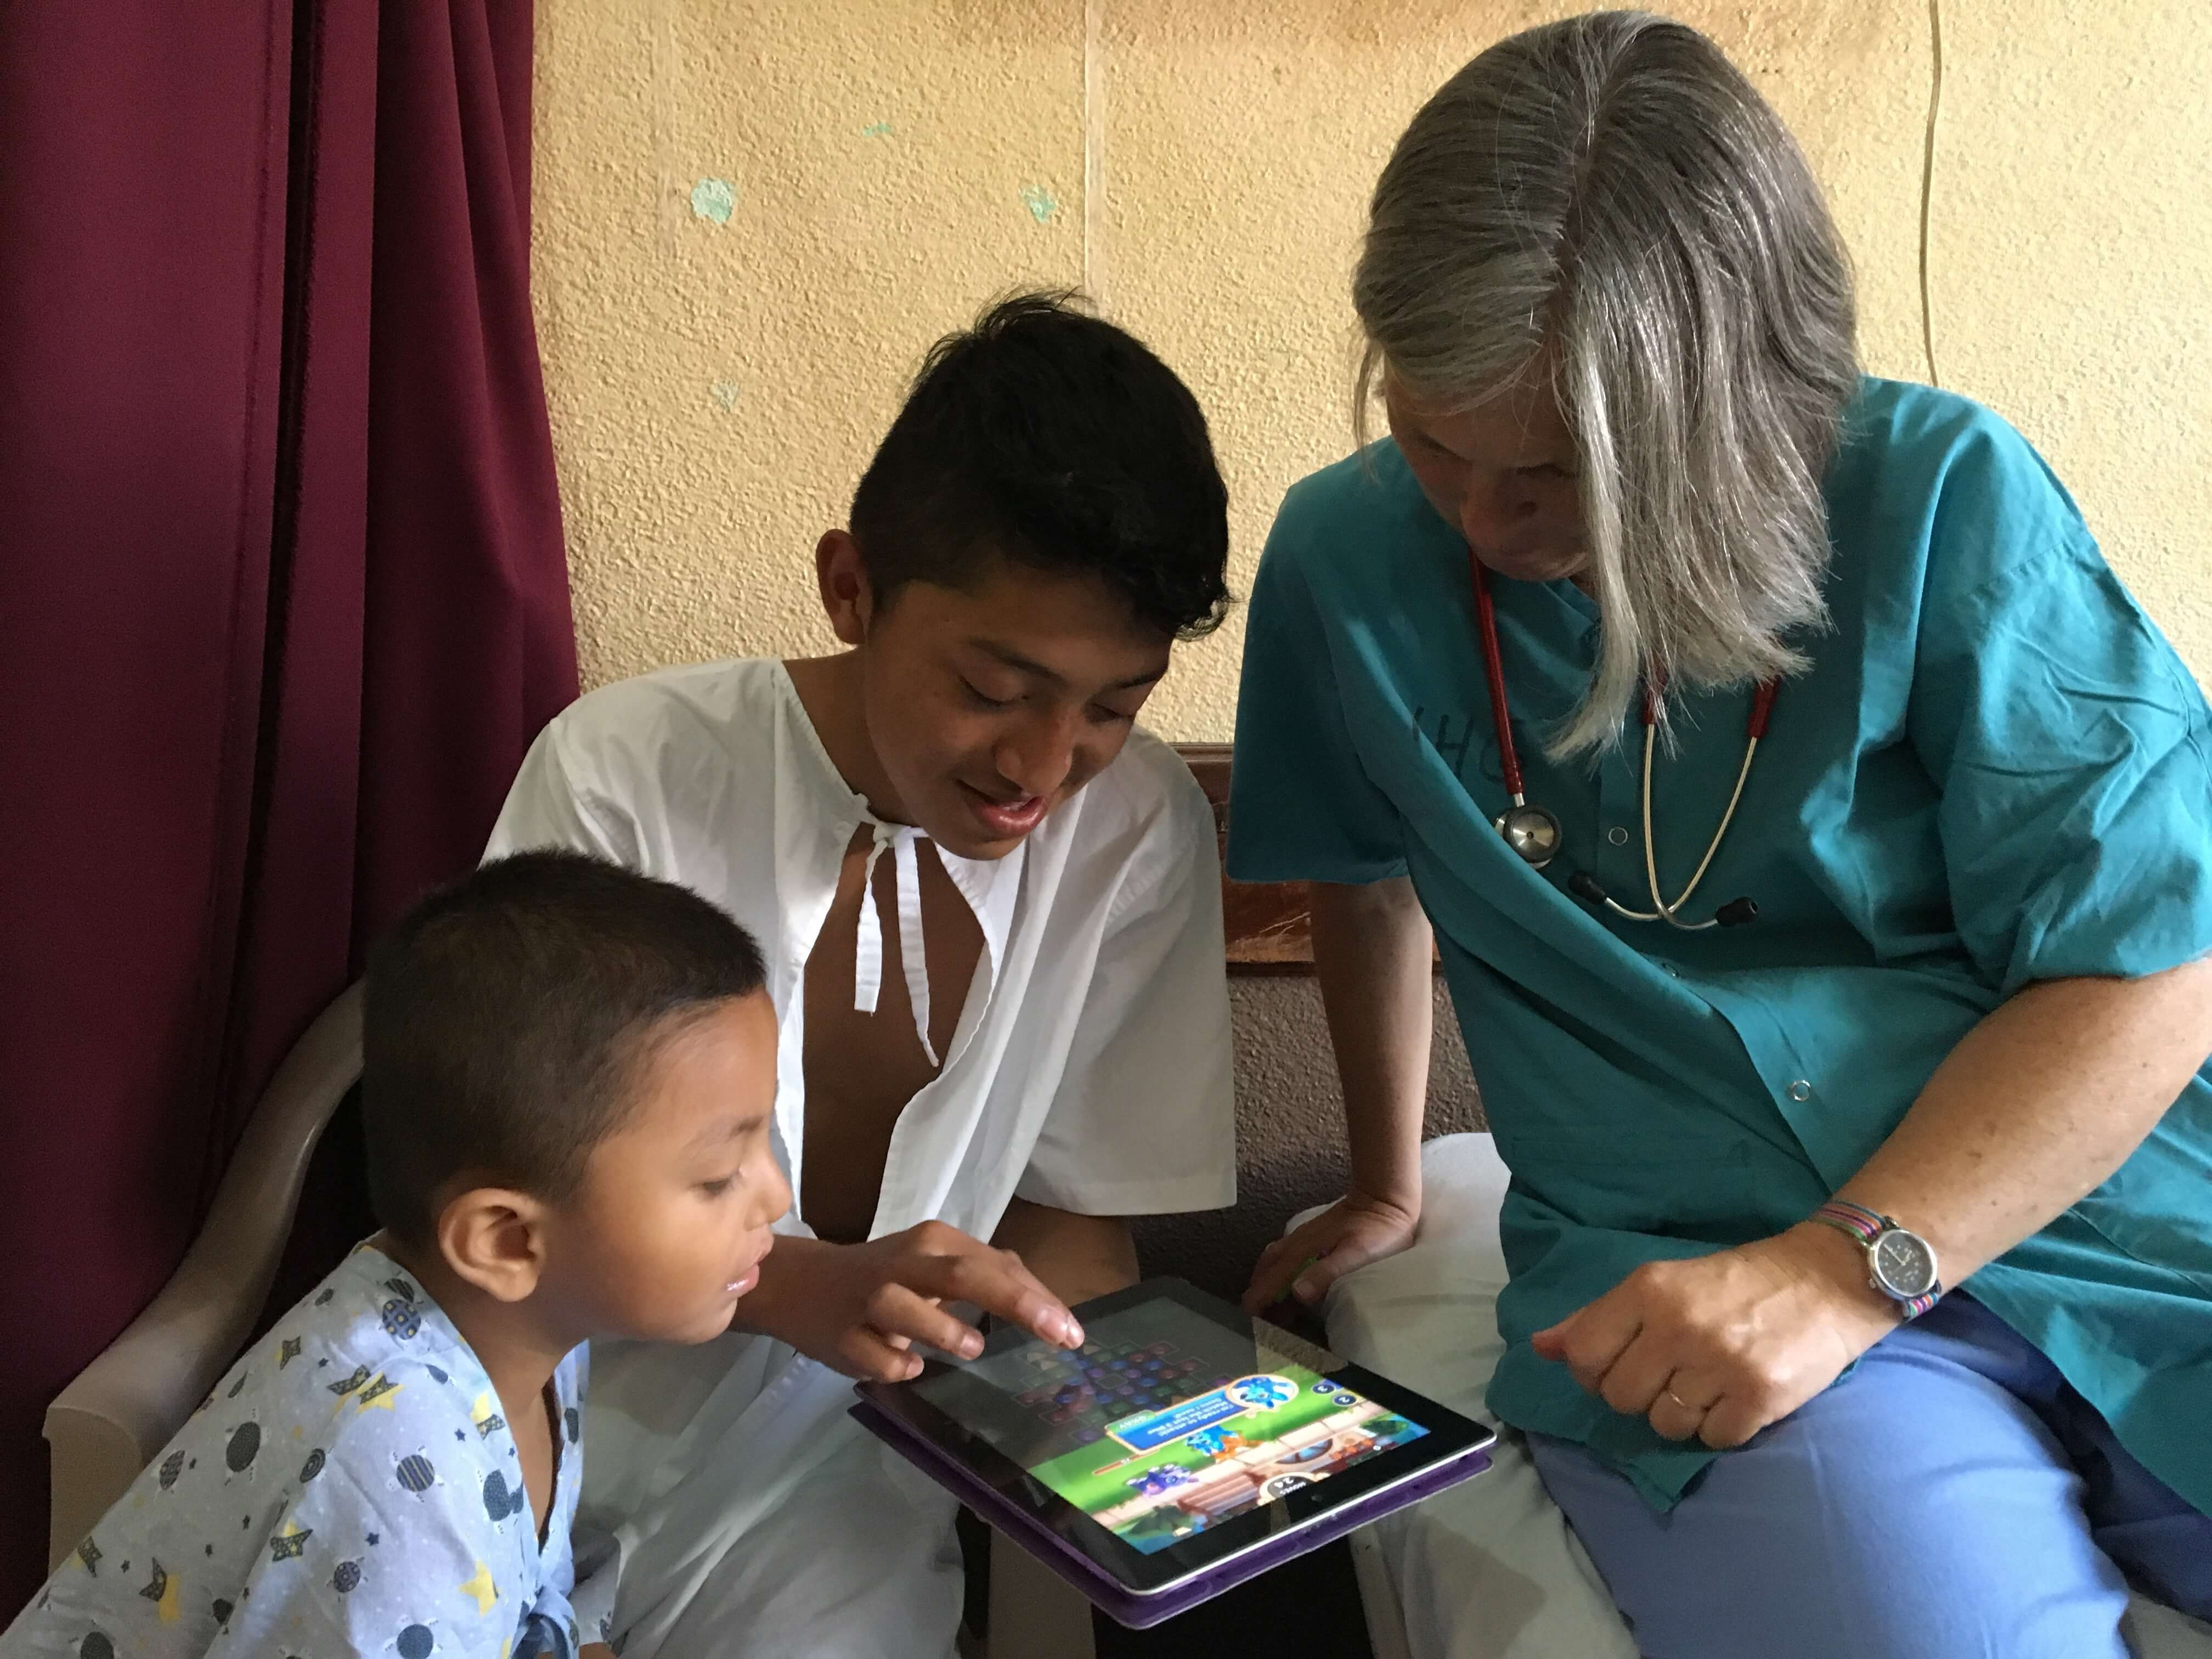 Robin and older patient Alex play a video game on Lead Pediatrician Paula Rand's iPad.